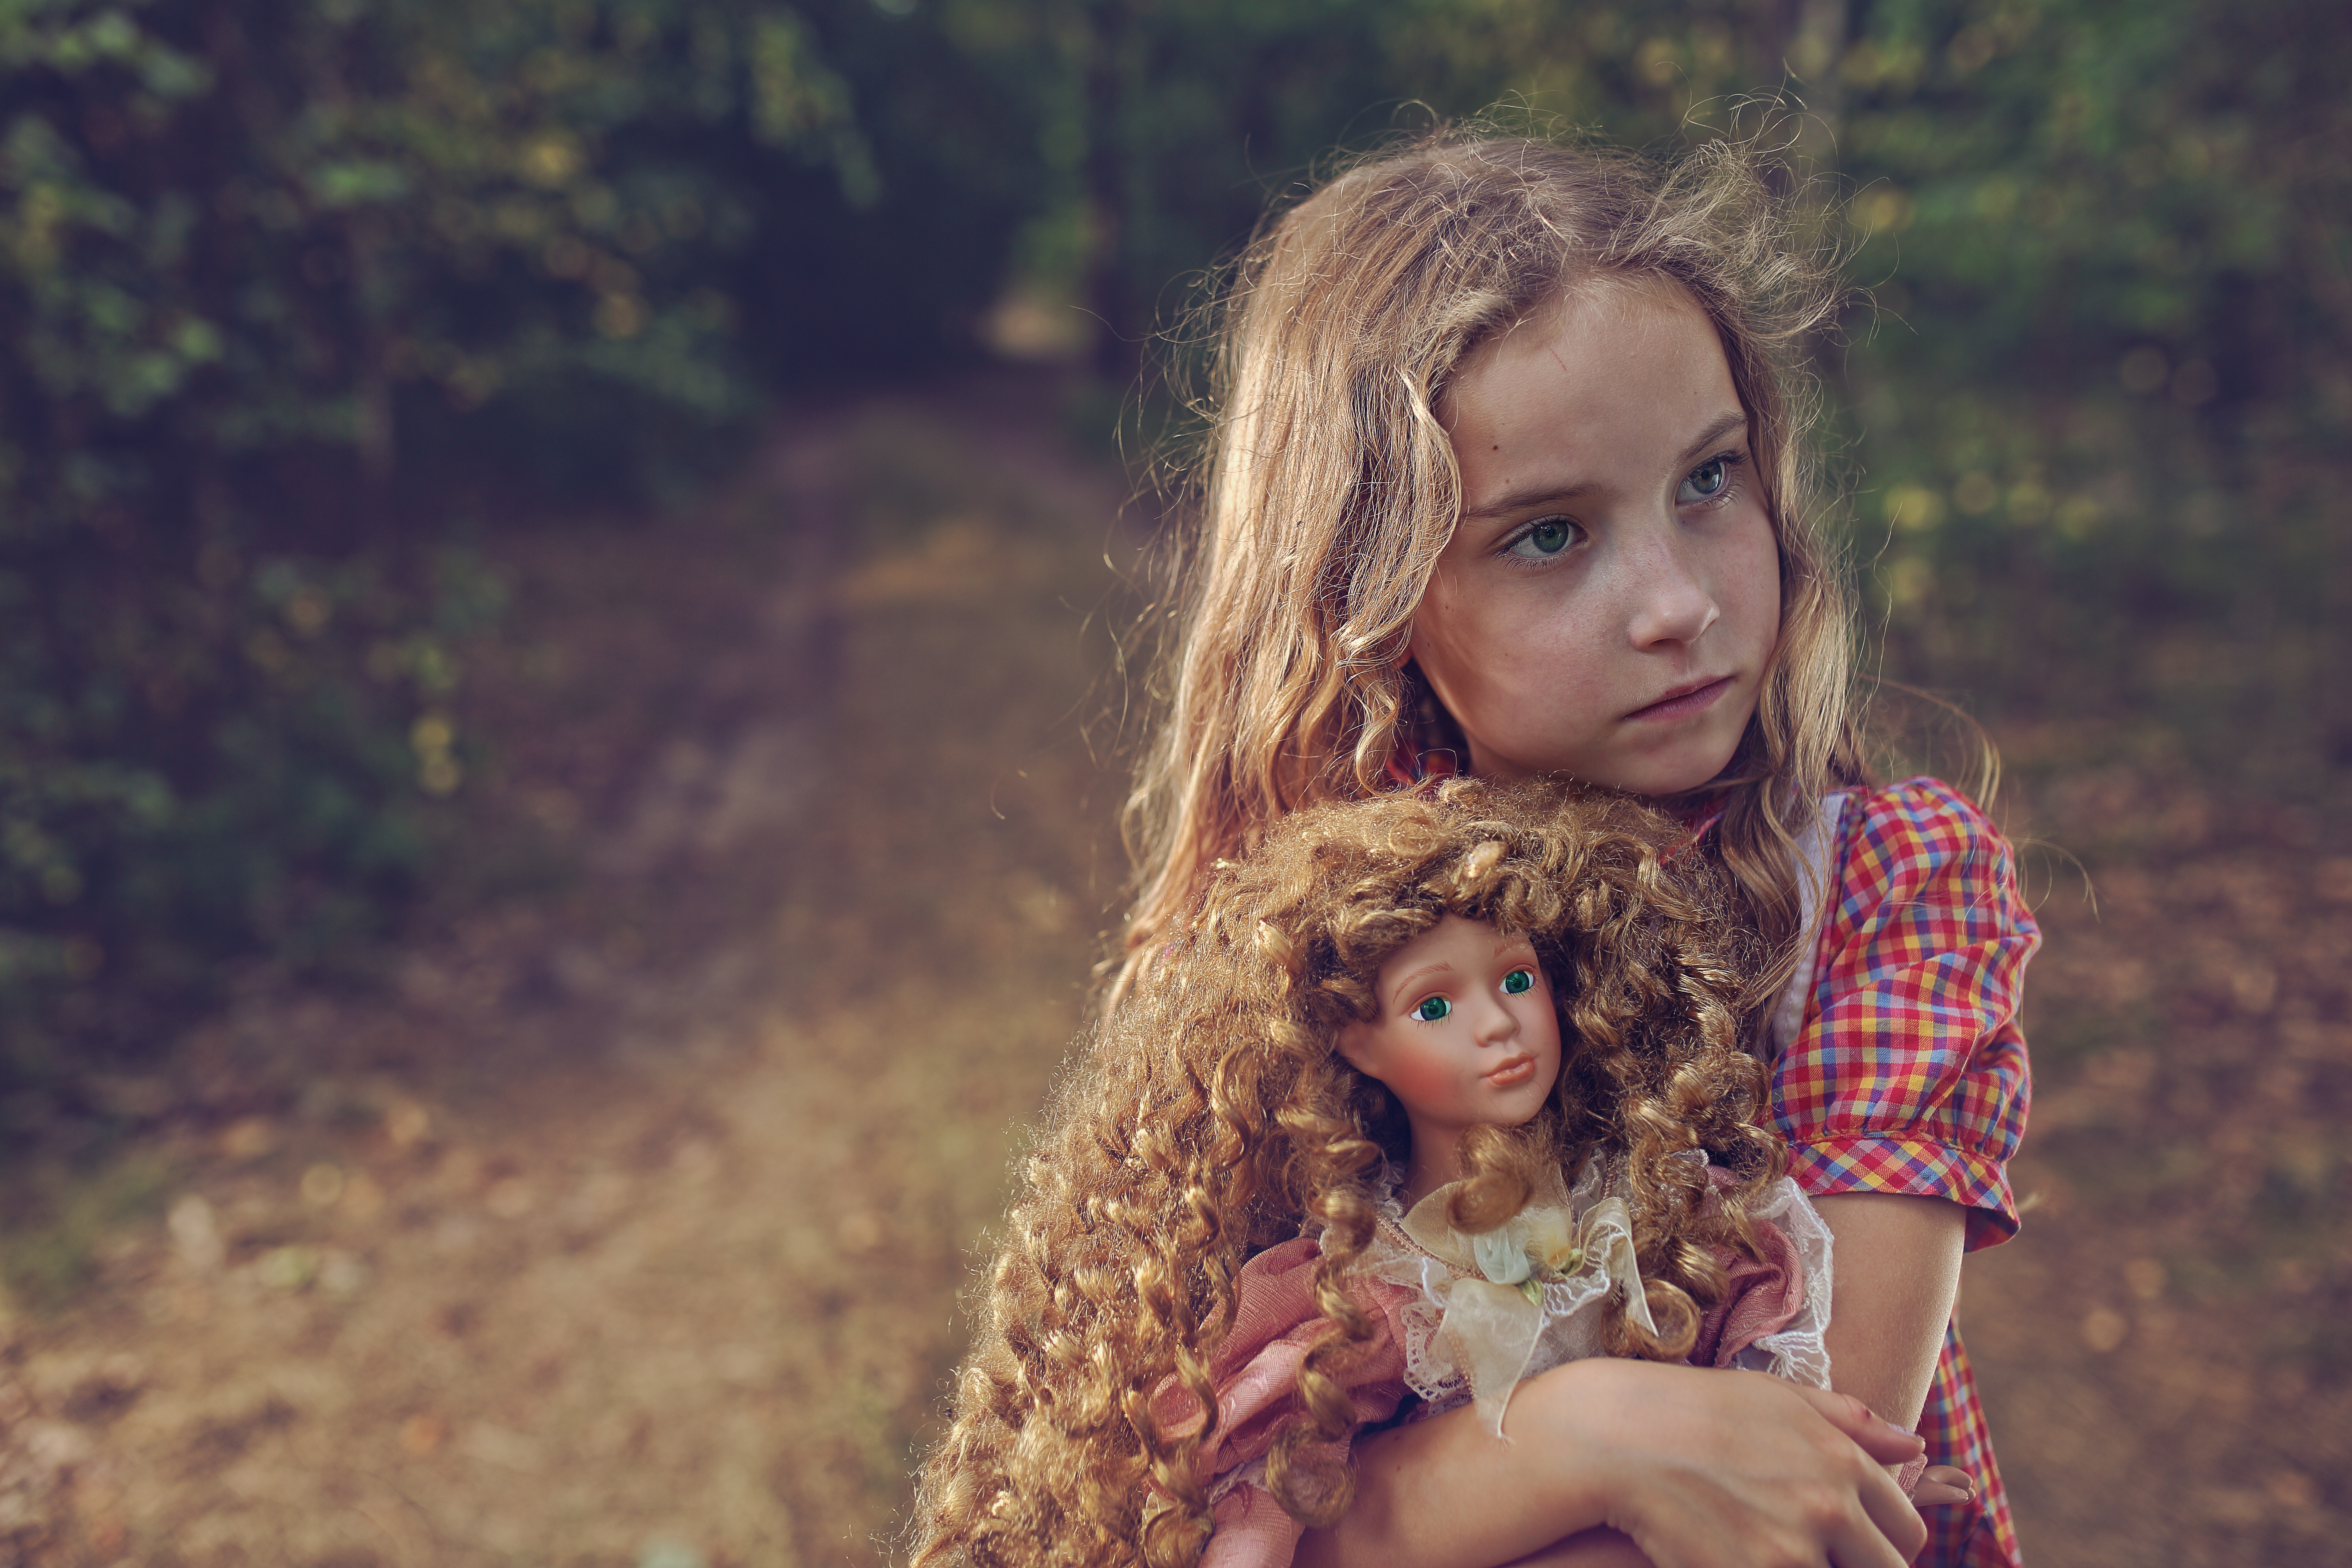 Pensive and mysterious young girl with a doll